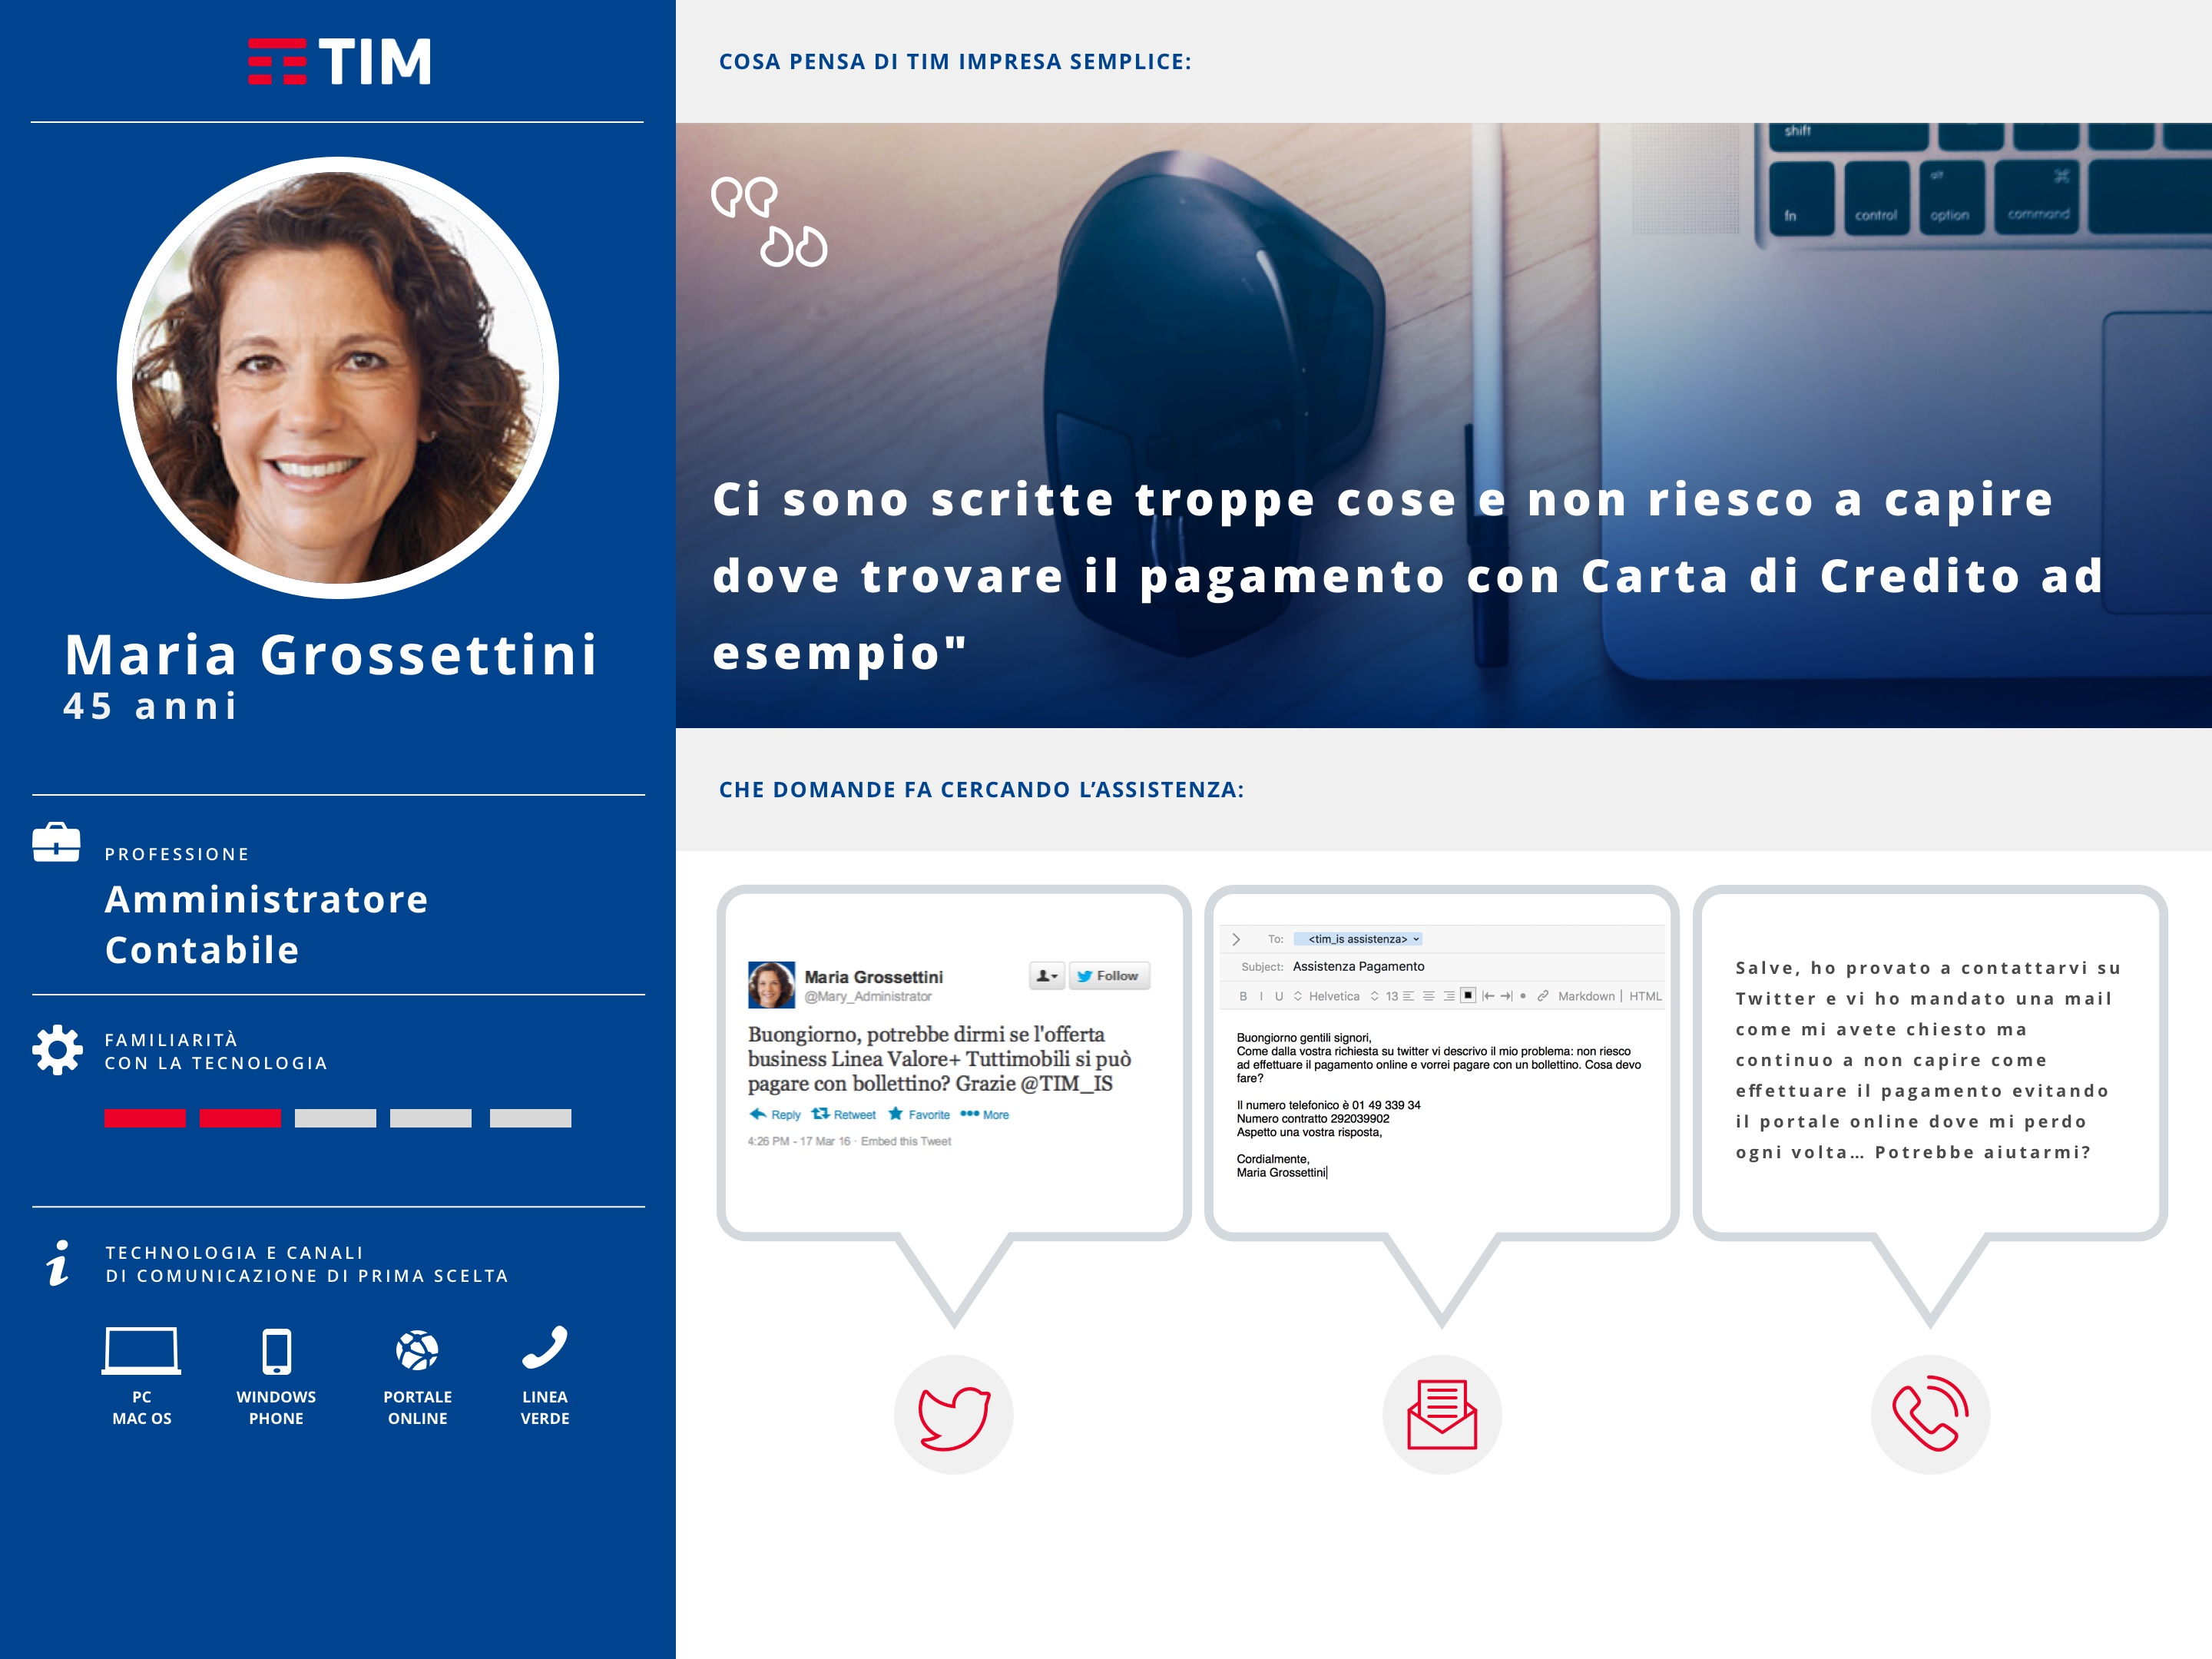 TIM IMPRESA SEMPLICE UX, DESALL, TIM IS, Data Driven UX, Carlo Frinolli, personas profile